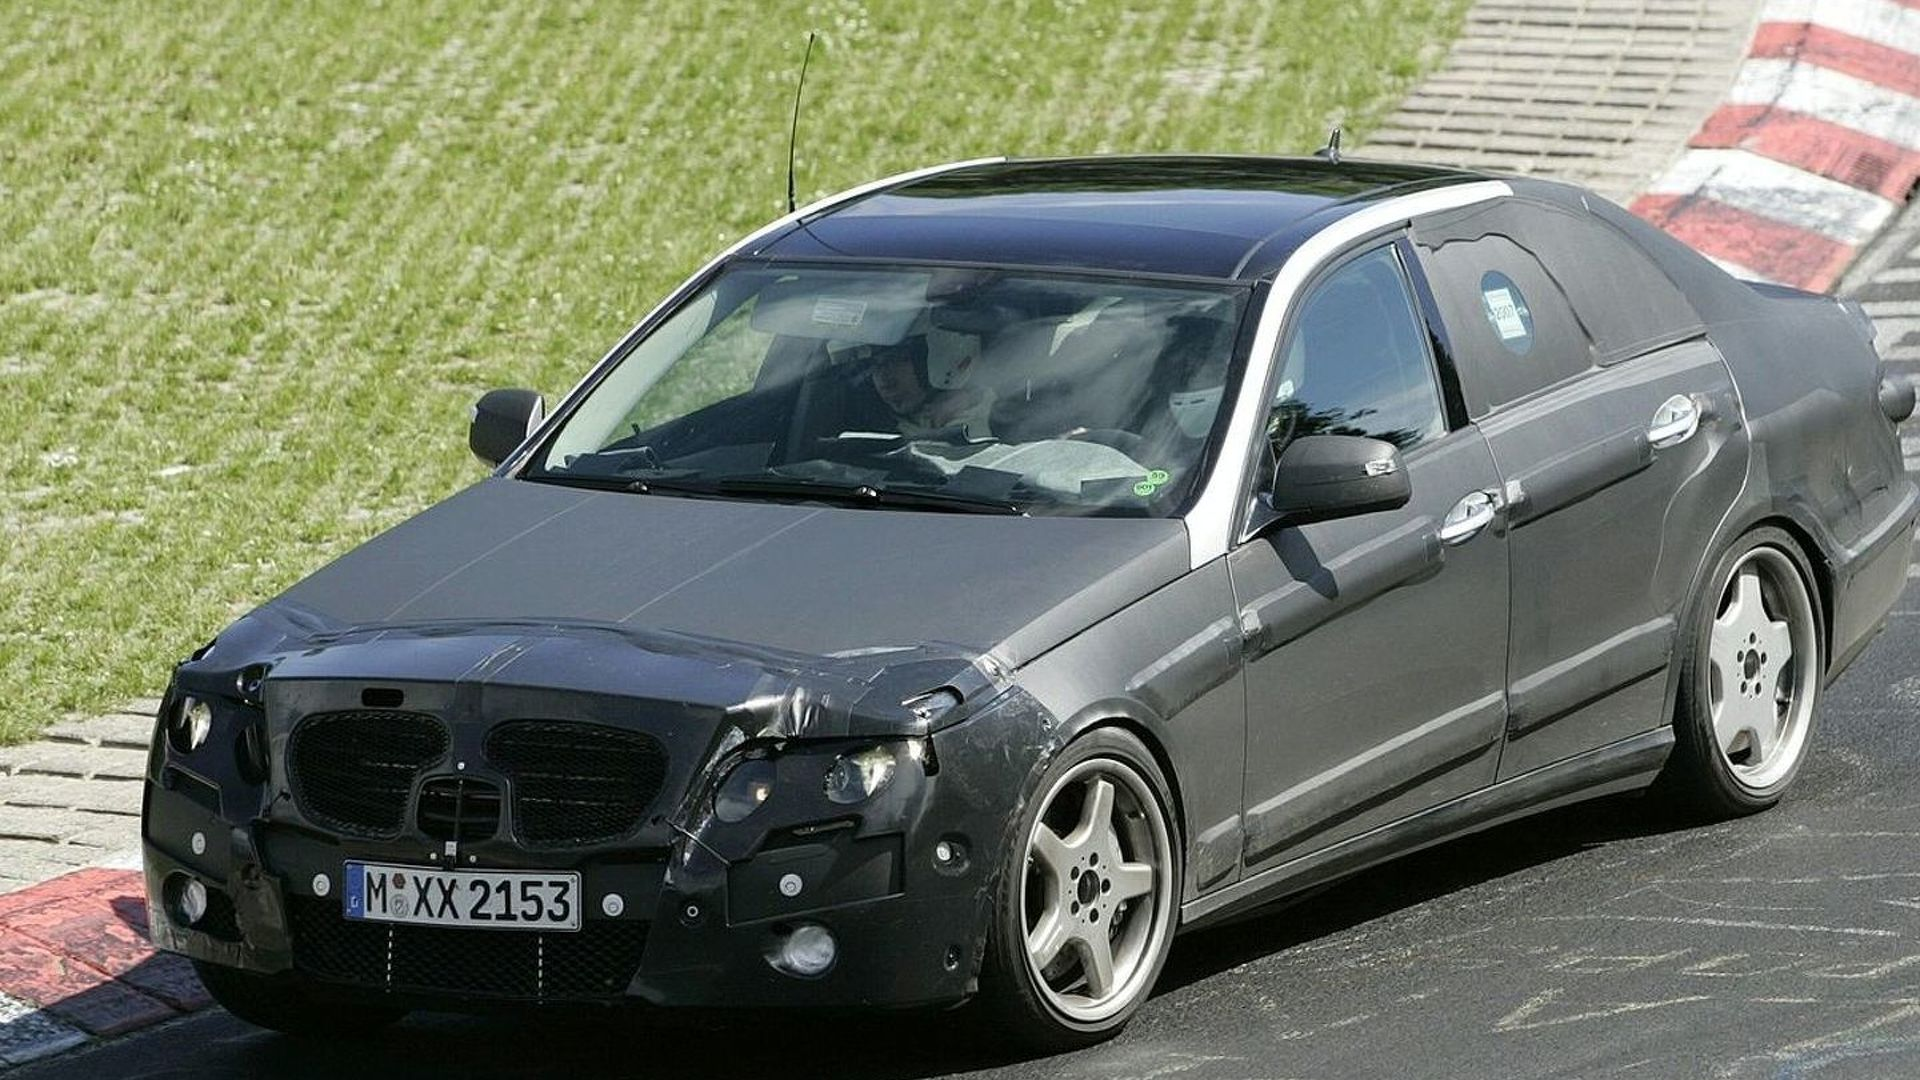 SPIED: Every Mercedes Benz E-Class Model